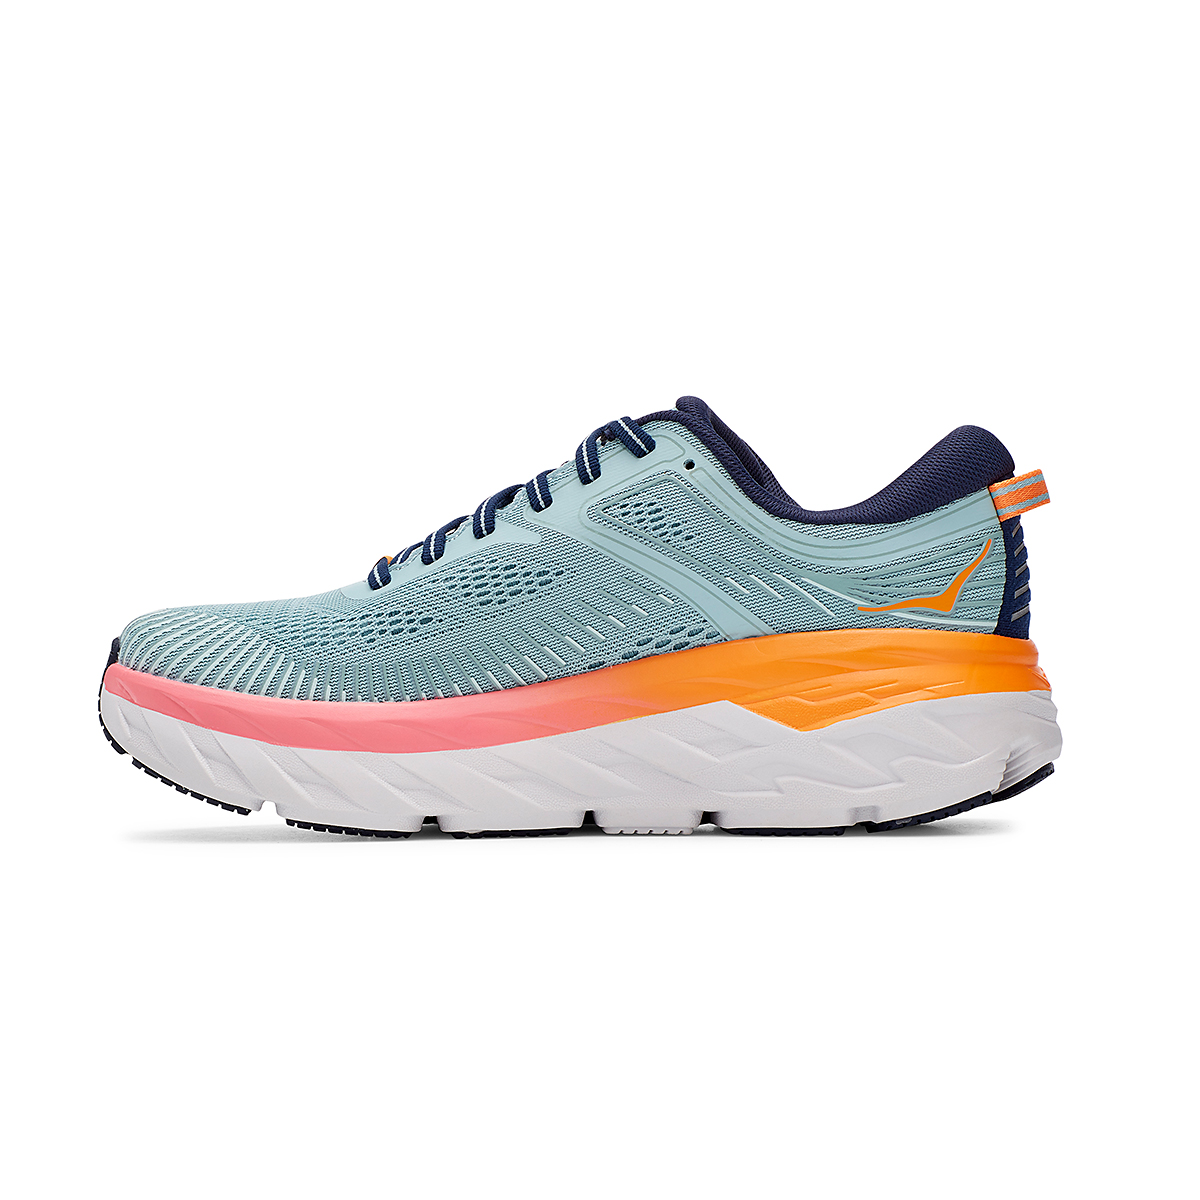 Women's Hoka One One Bondi 7 Running Shoe, , large, image 2